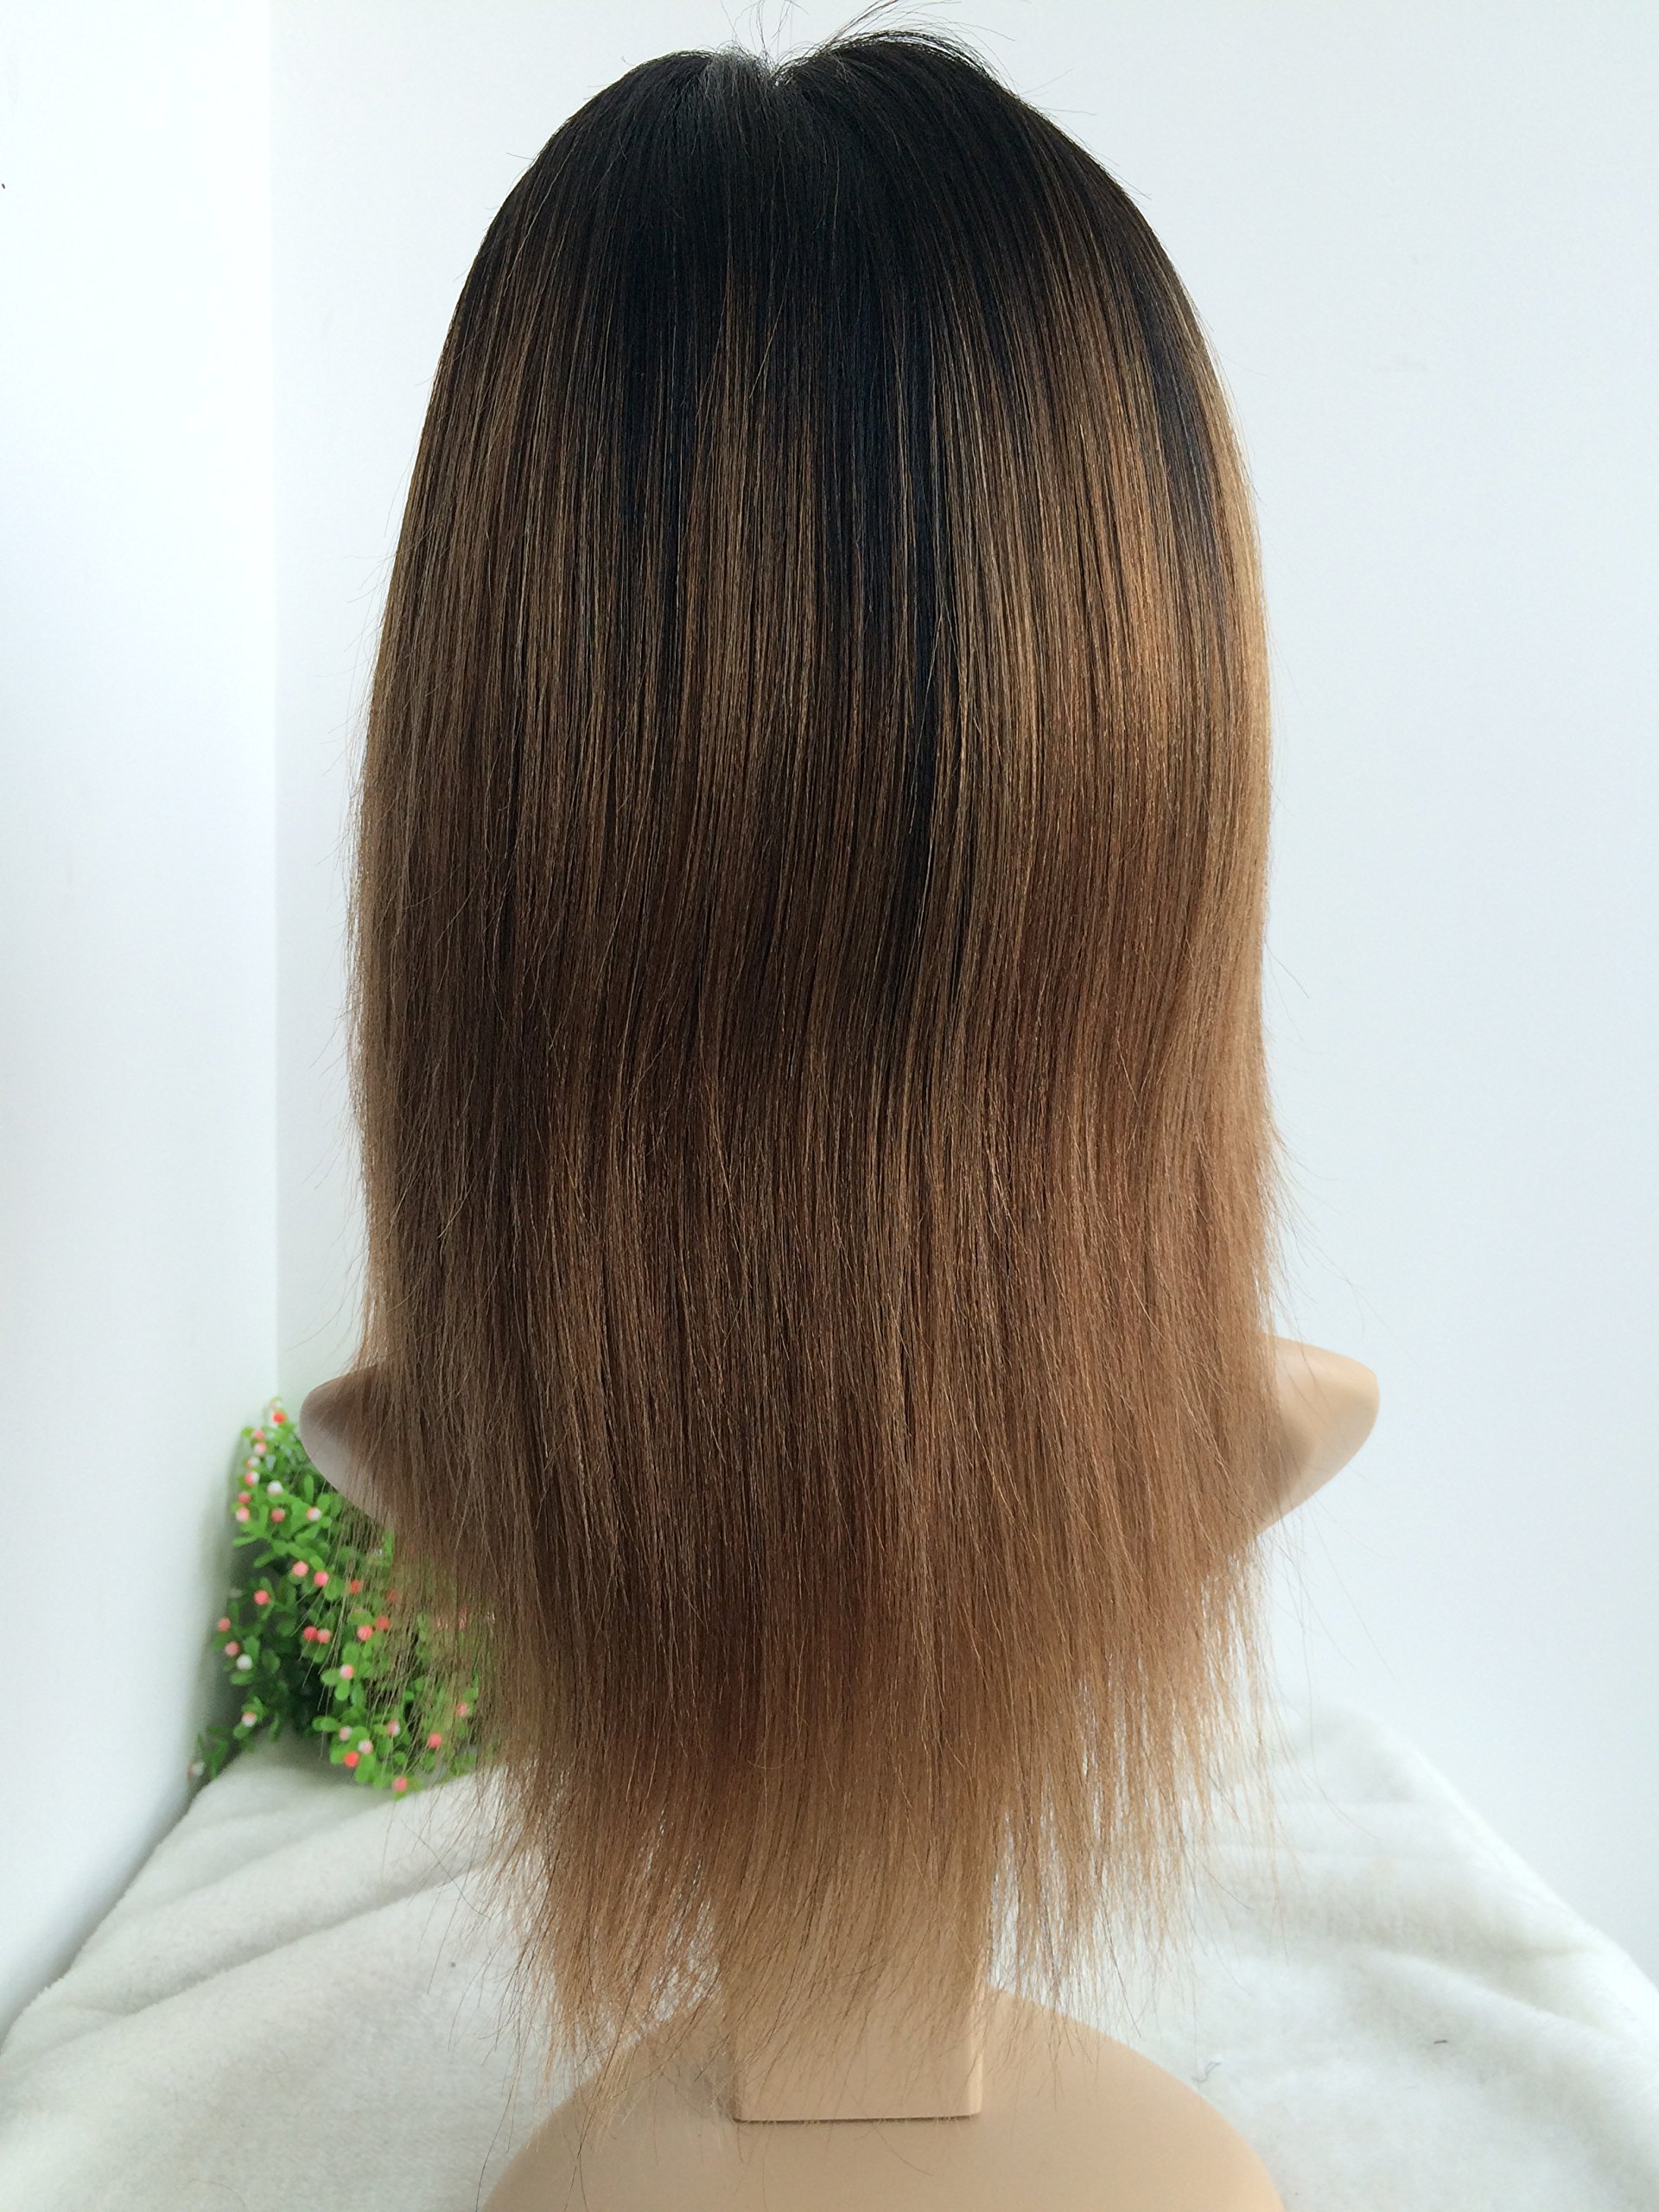 CHINESE VIRGIN 10 INCH,LIGHT YAKI,FULL LACE WIGS SILK TOP,BLEACHED KNOTS--hot sale product!!! by April silk top wigs (Image #3)